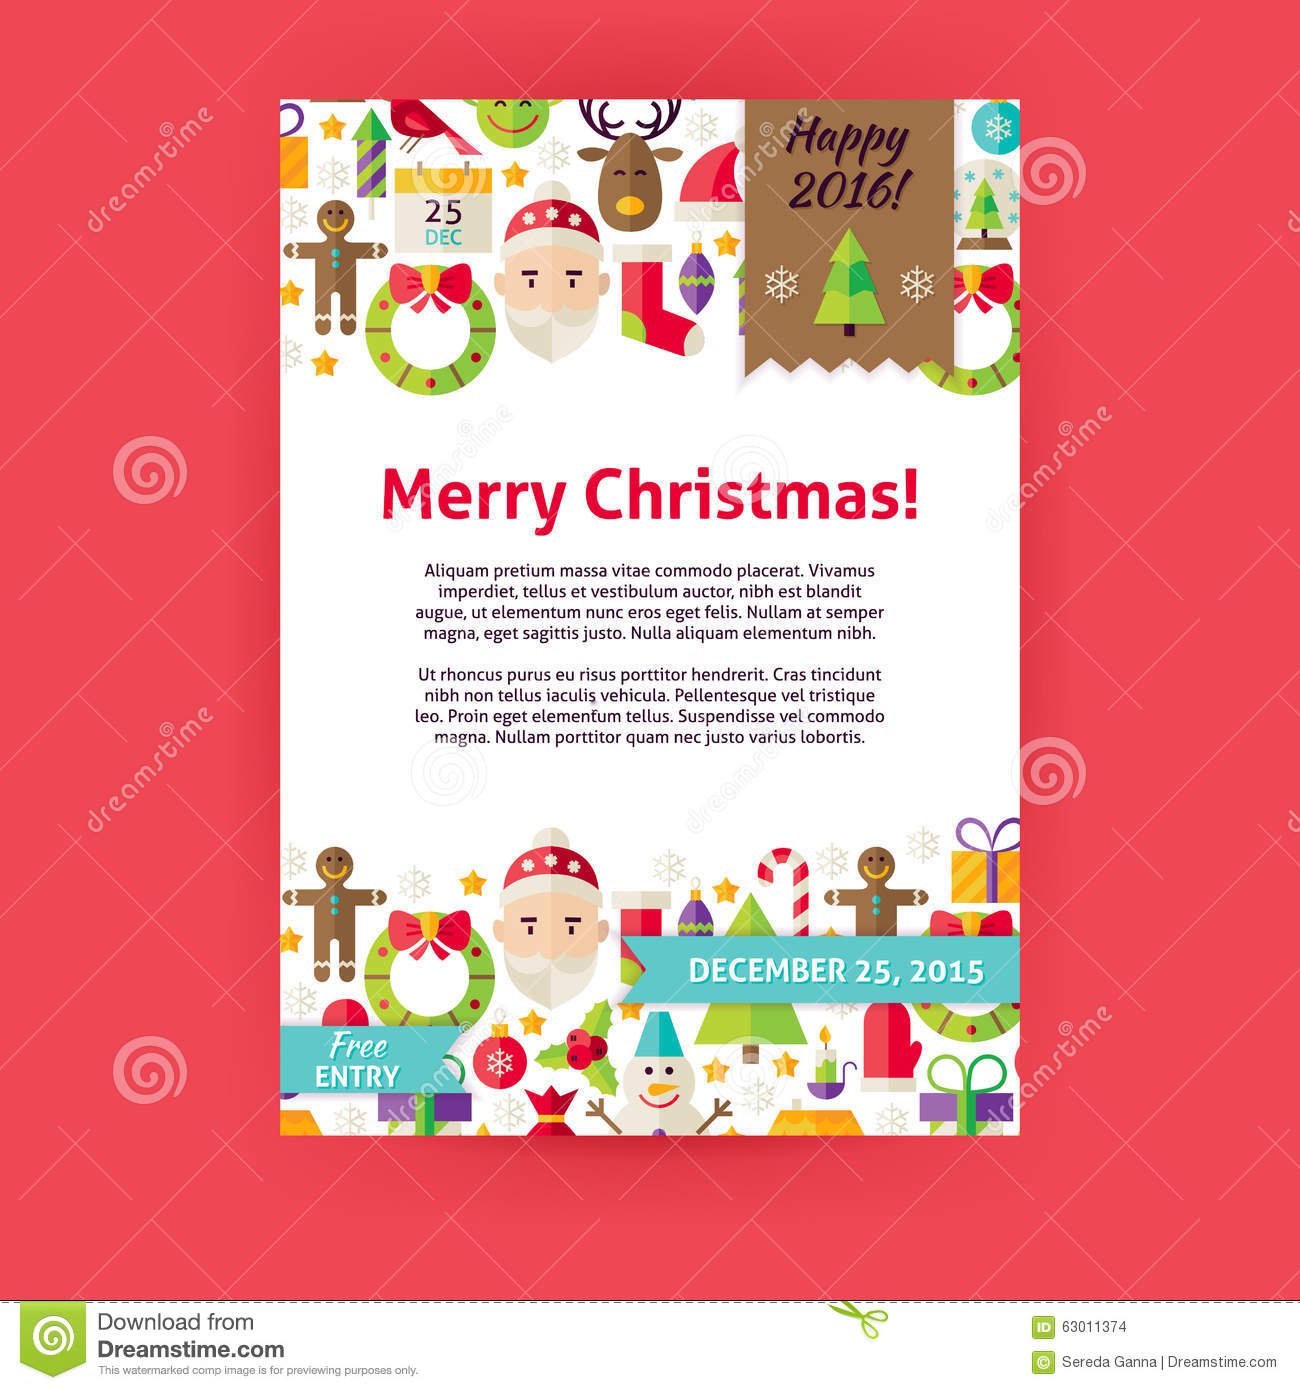 merry christmas holiday vector invitation template flyer stock vector image 63011374. Black Bedroom Furniture Sets. Home Design Ideas